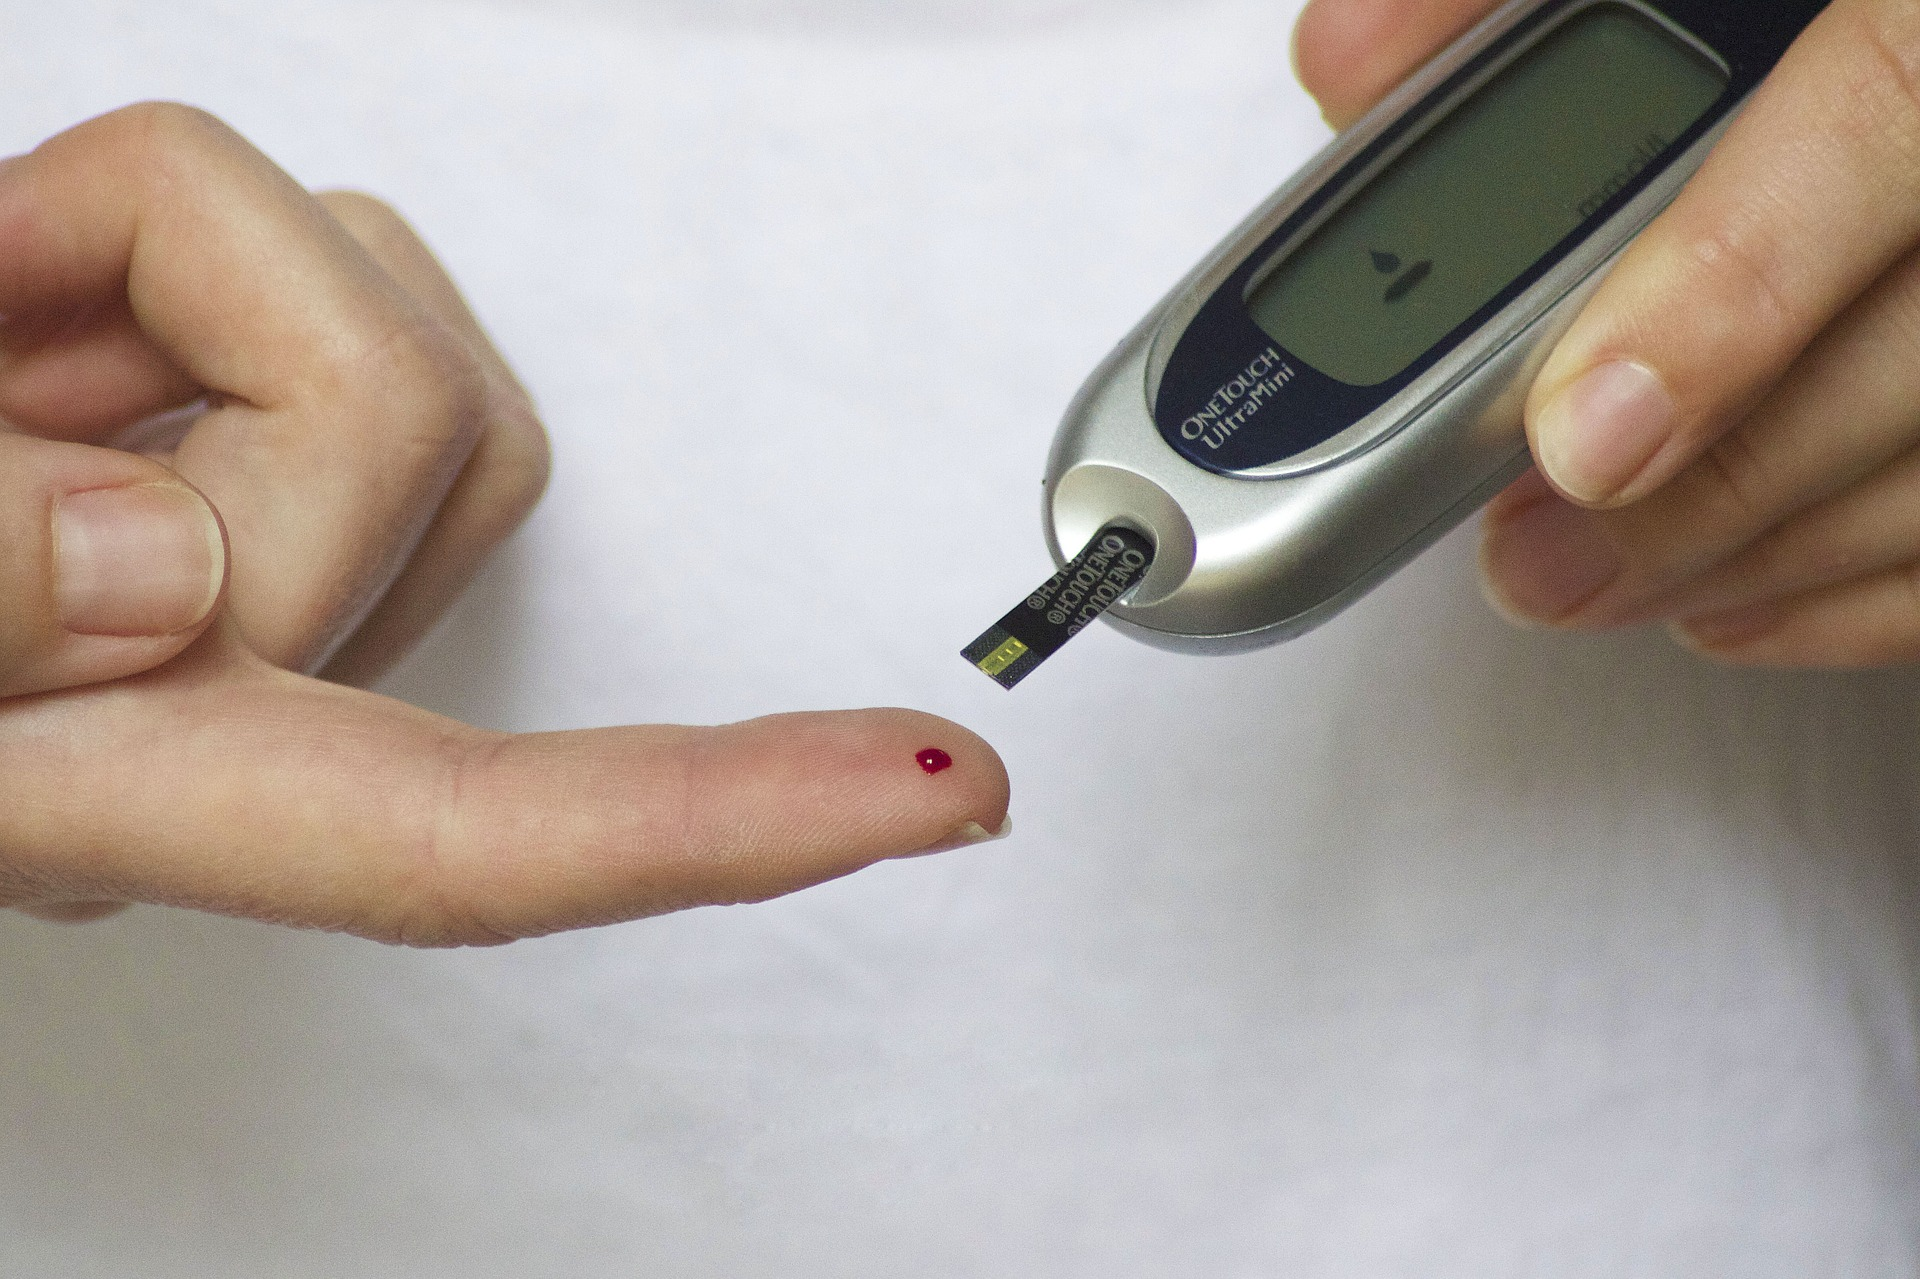 Image of type 1 diabetes